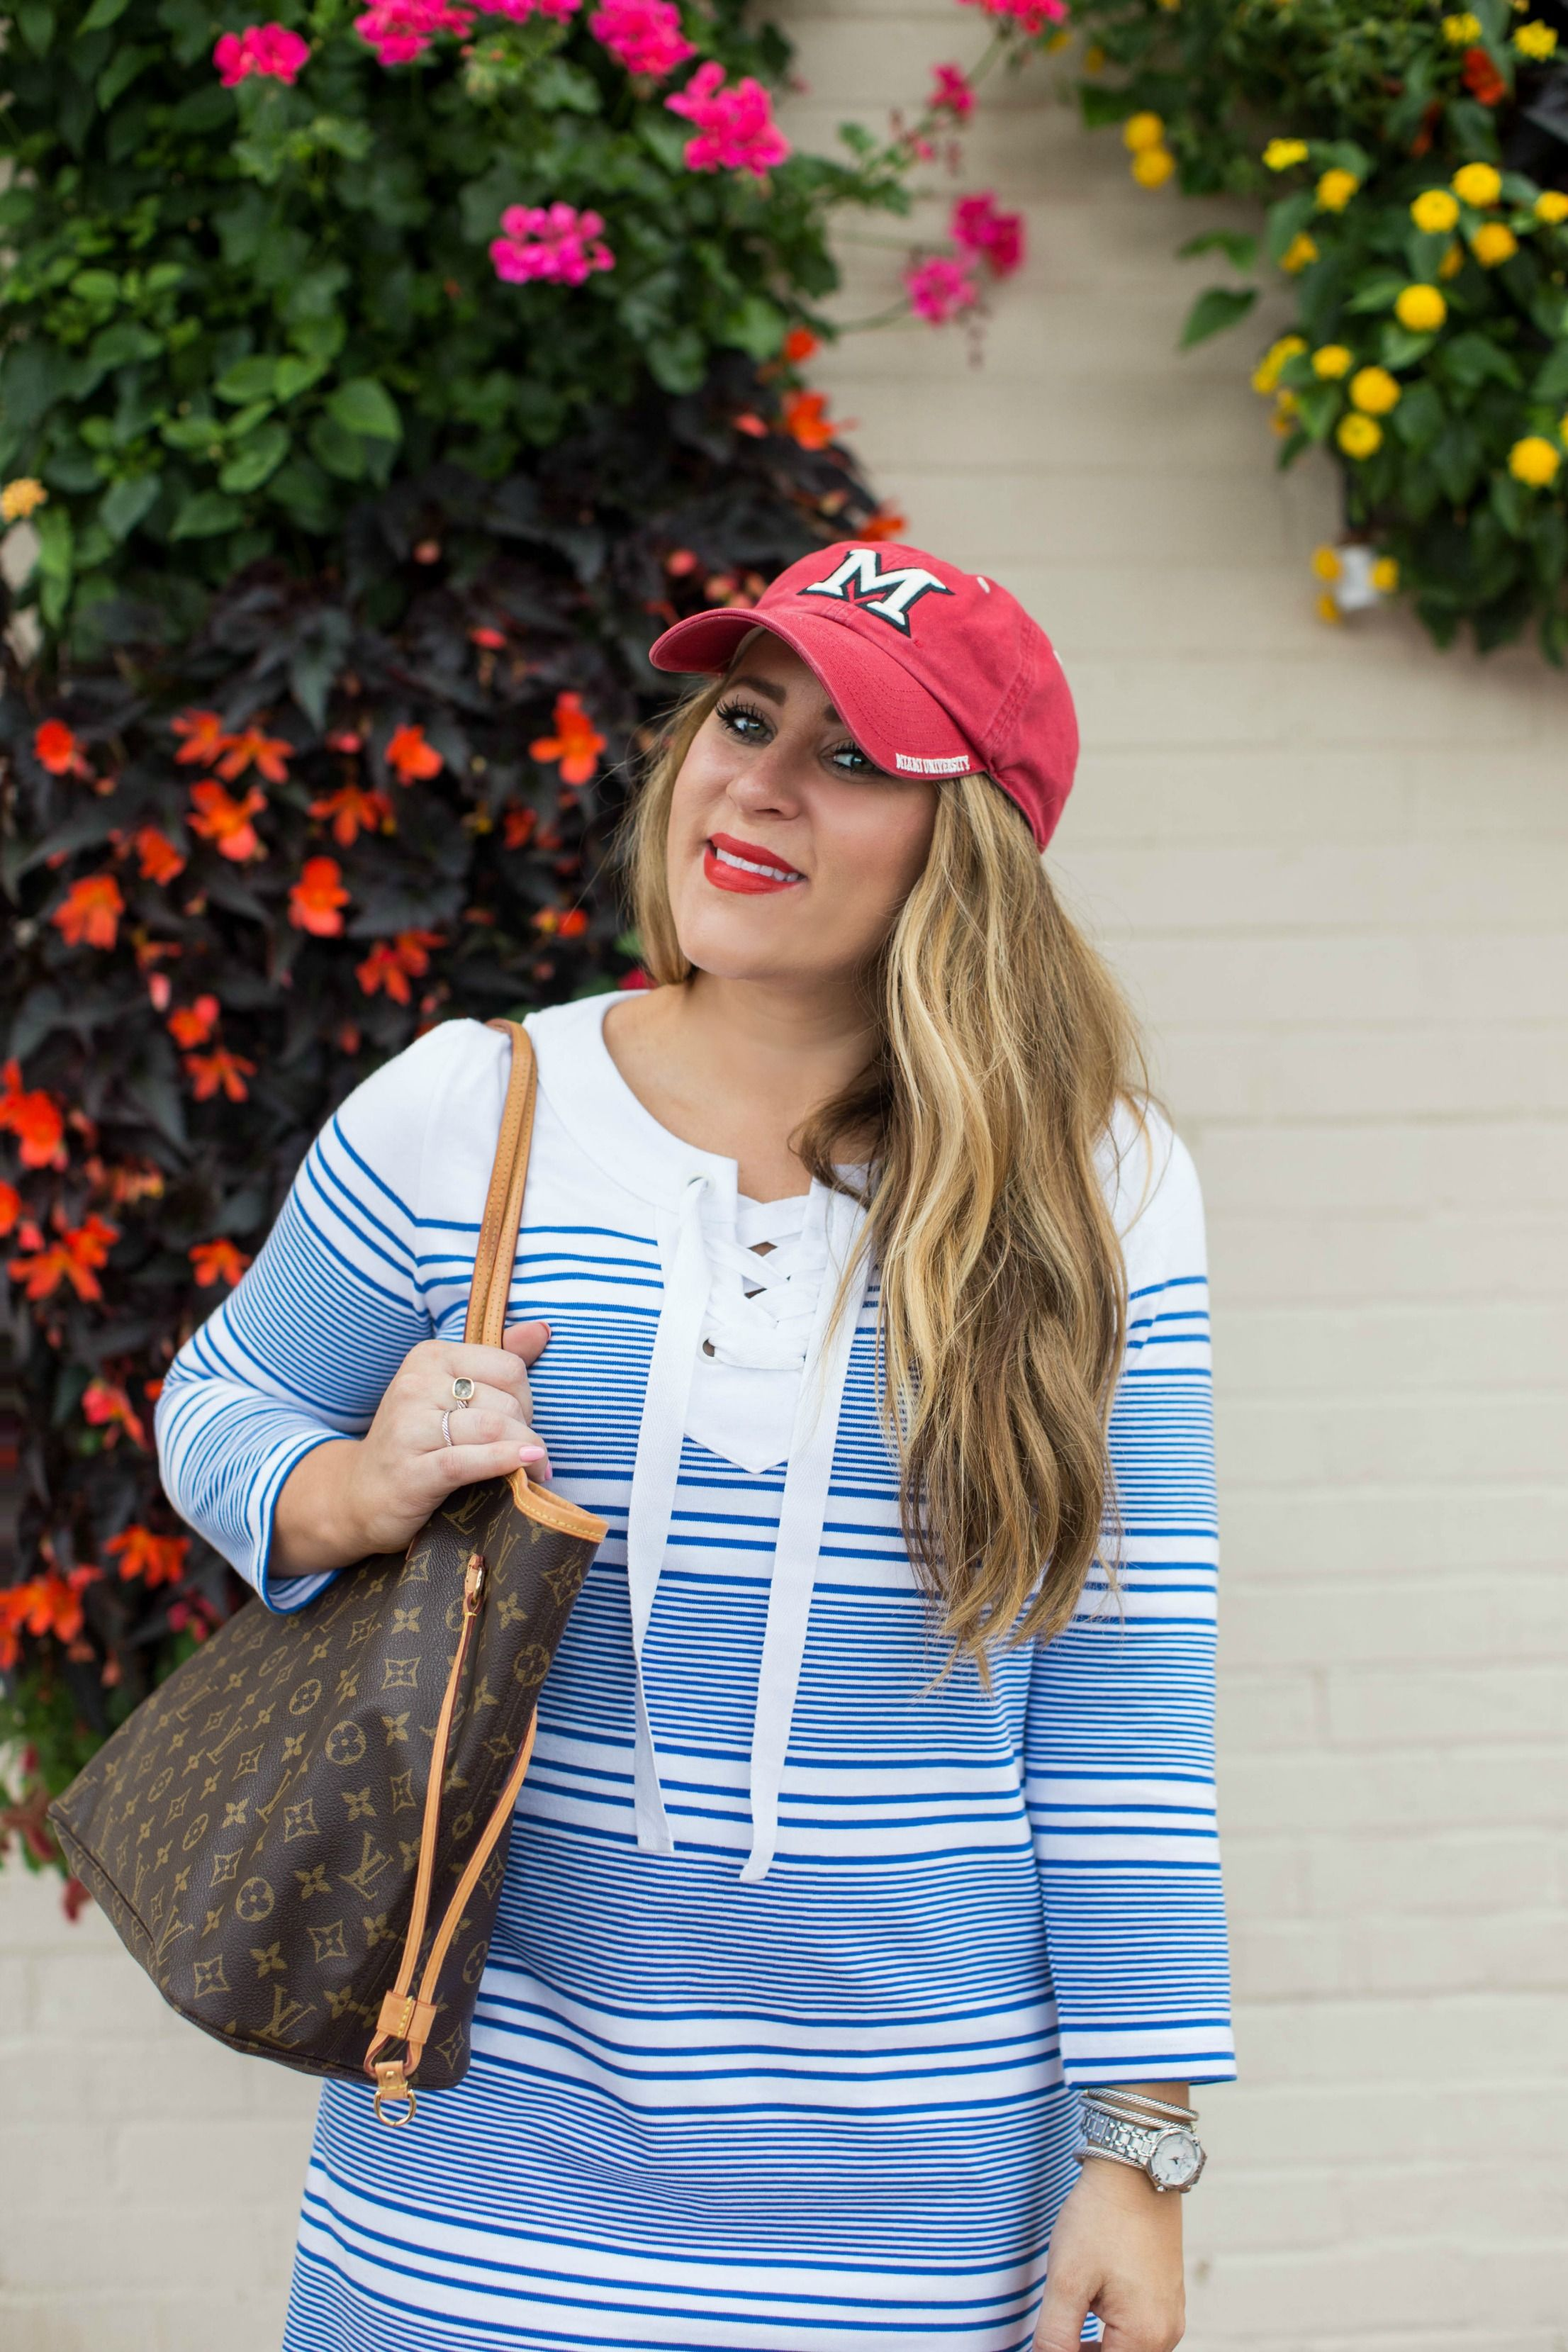 c4ce6df94 Casual Summer Outfit With Baseball Hat